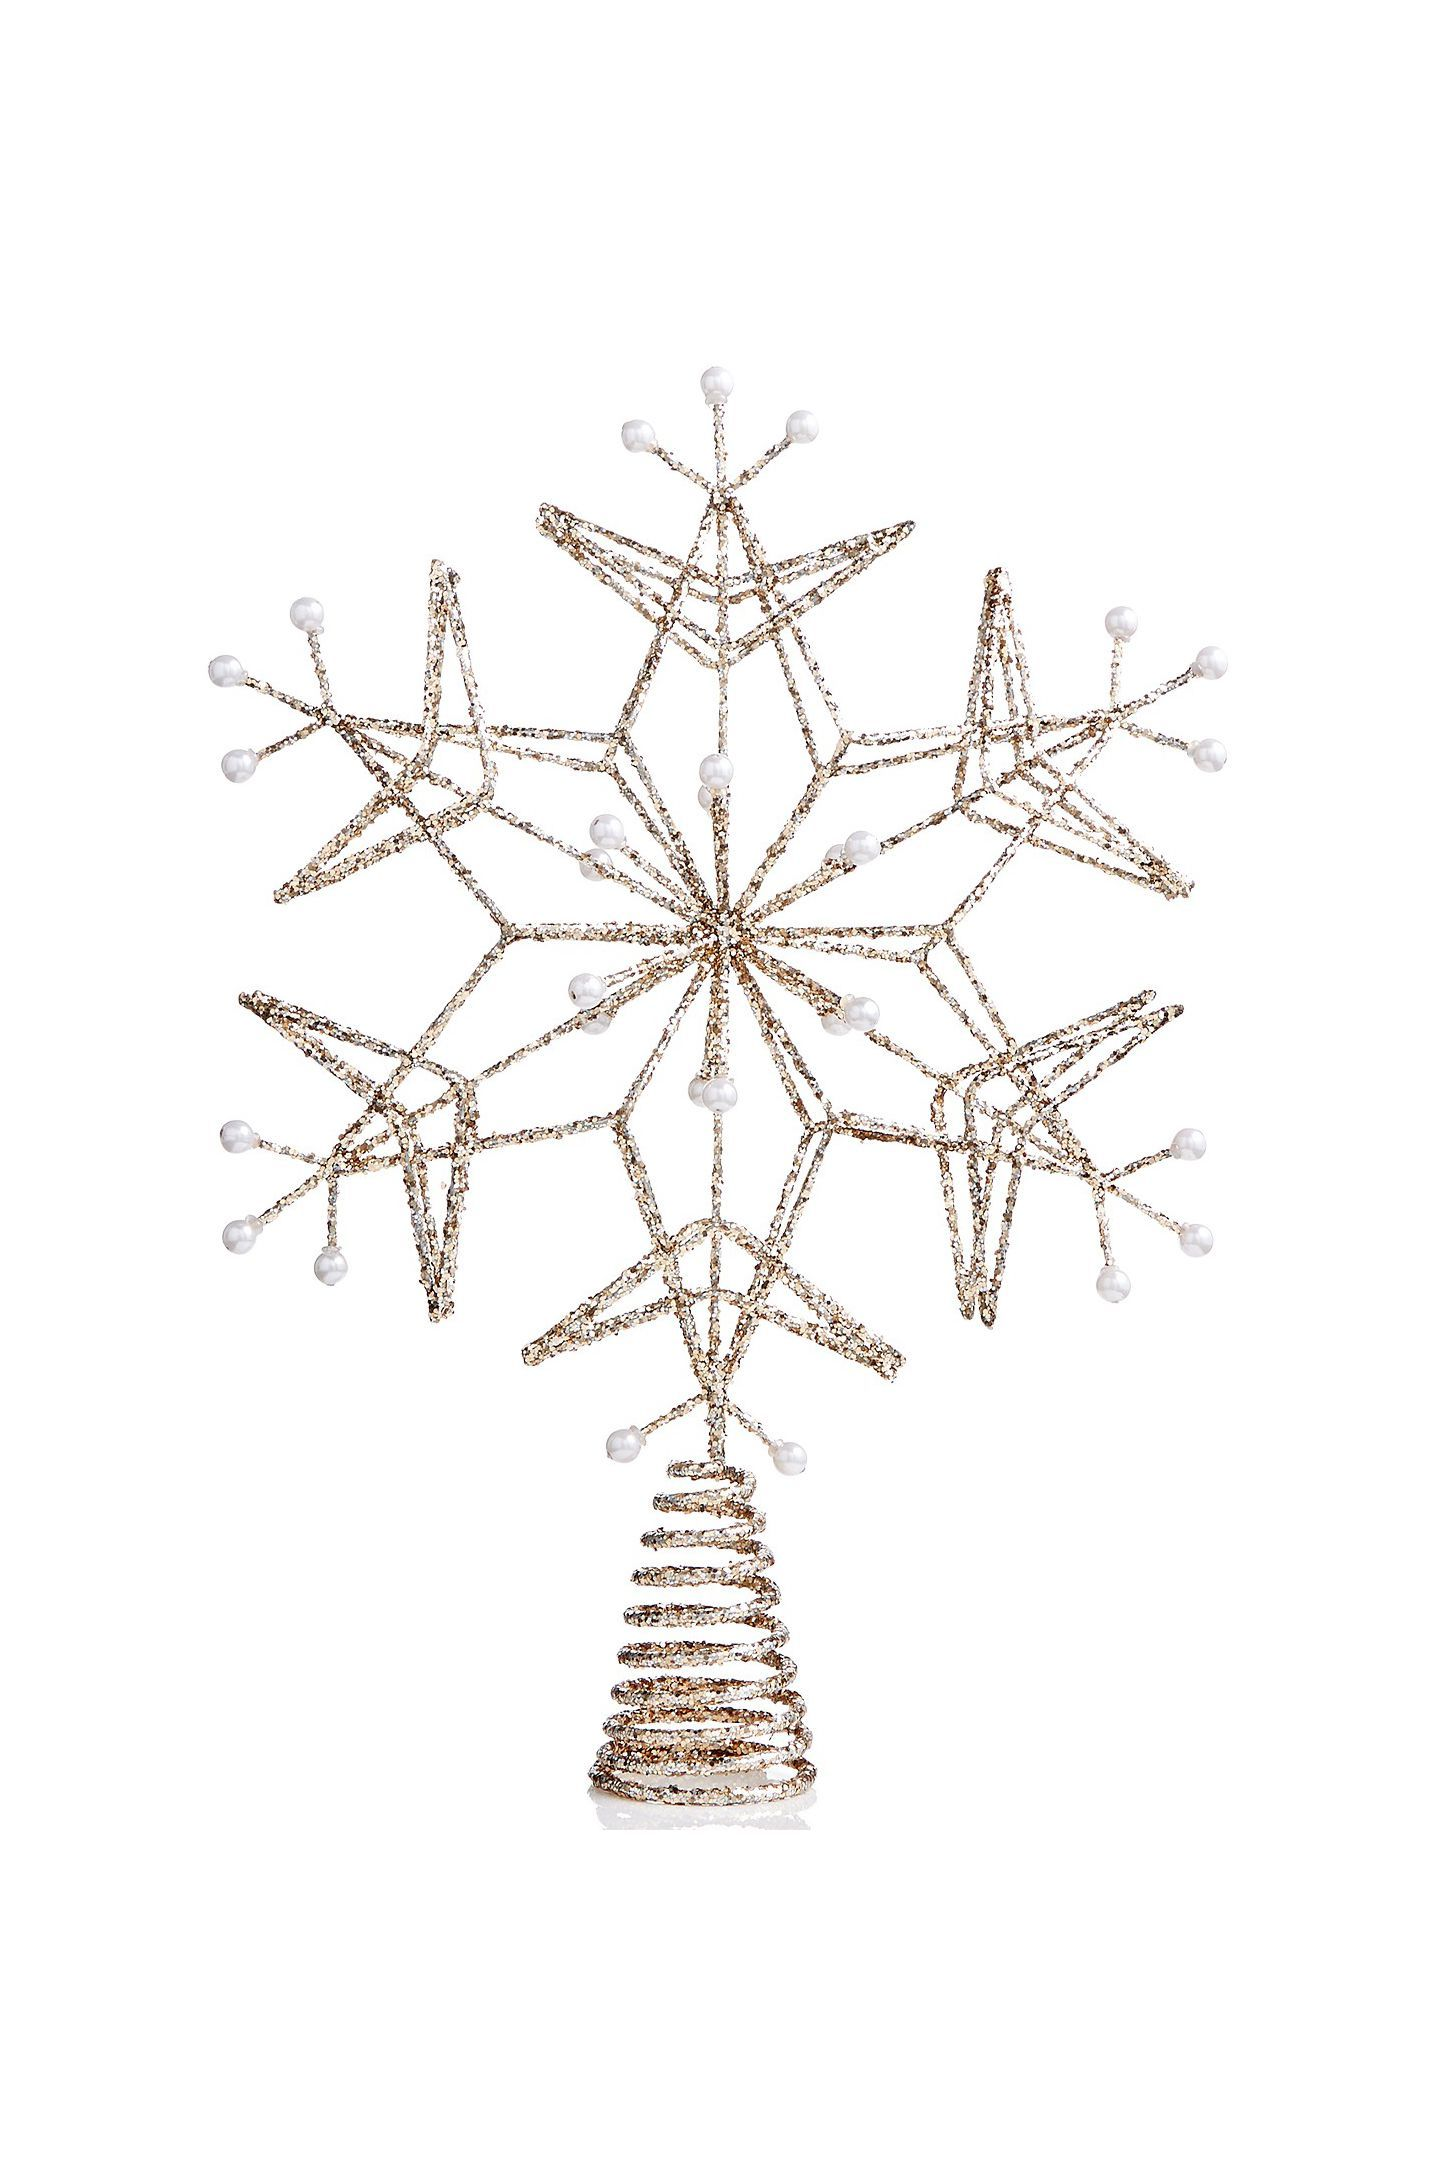 18 unique christmas tree toppers christmas tree decorations - Christmas Toppers